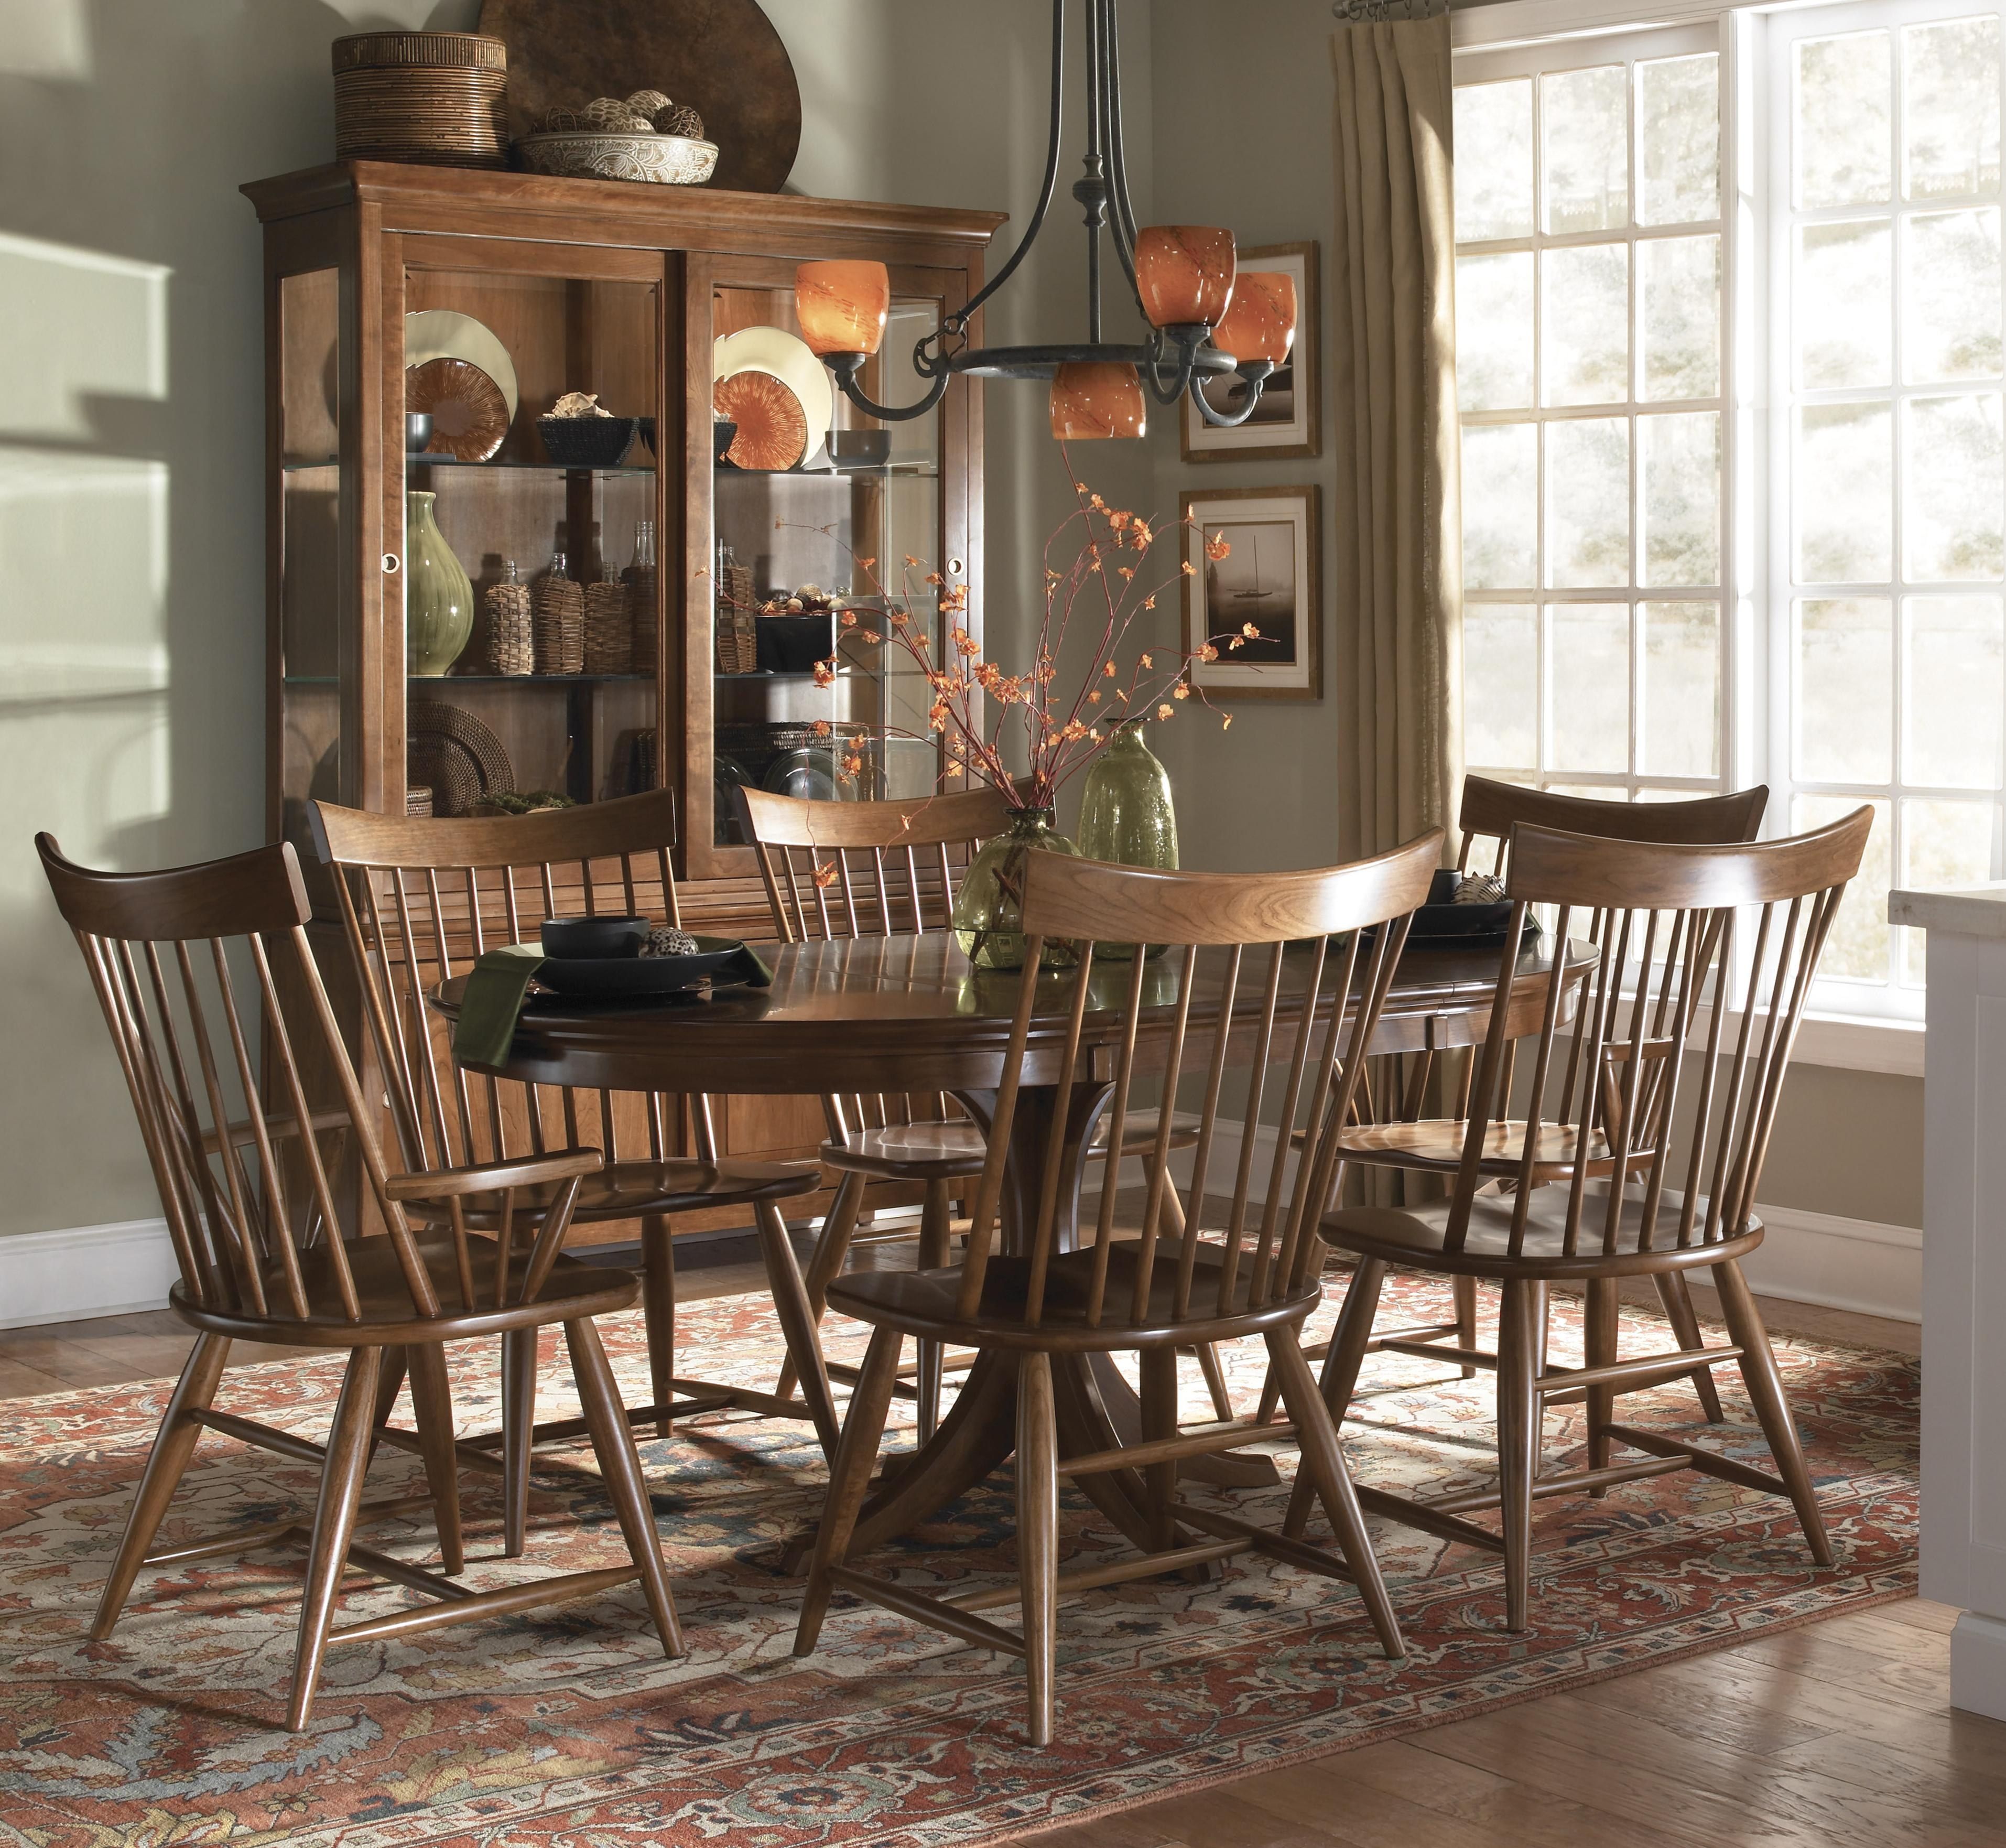 Kincaid Furniture Cherry Park Seven Piece Round Dining Table u0026 Windsor Chair Set - AHFA - Dining 7 (or more) Piece Set Dealer Locator & Kincaid Furniture Cherry Park Seven Piece Round Dining Table ...